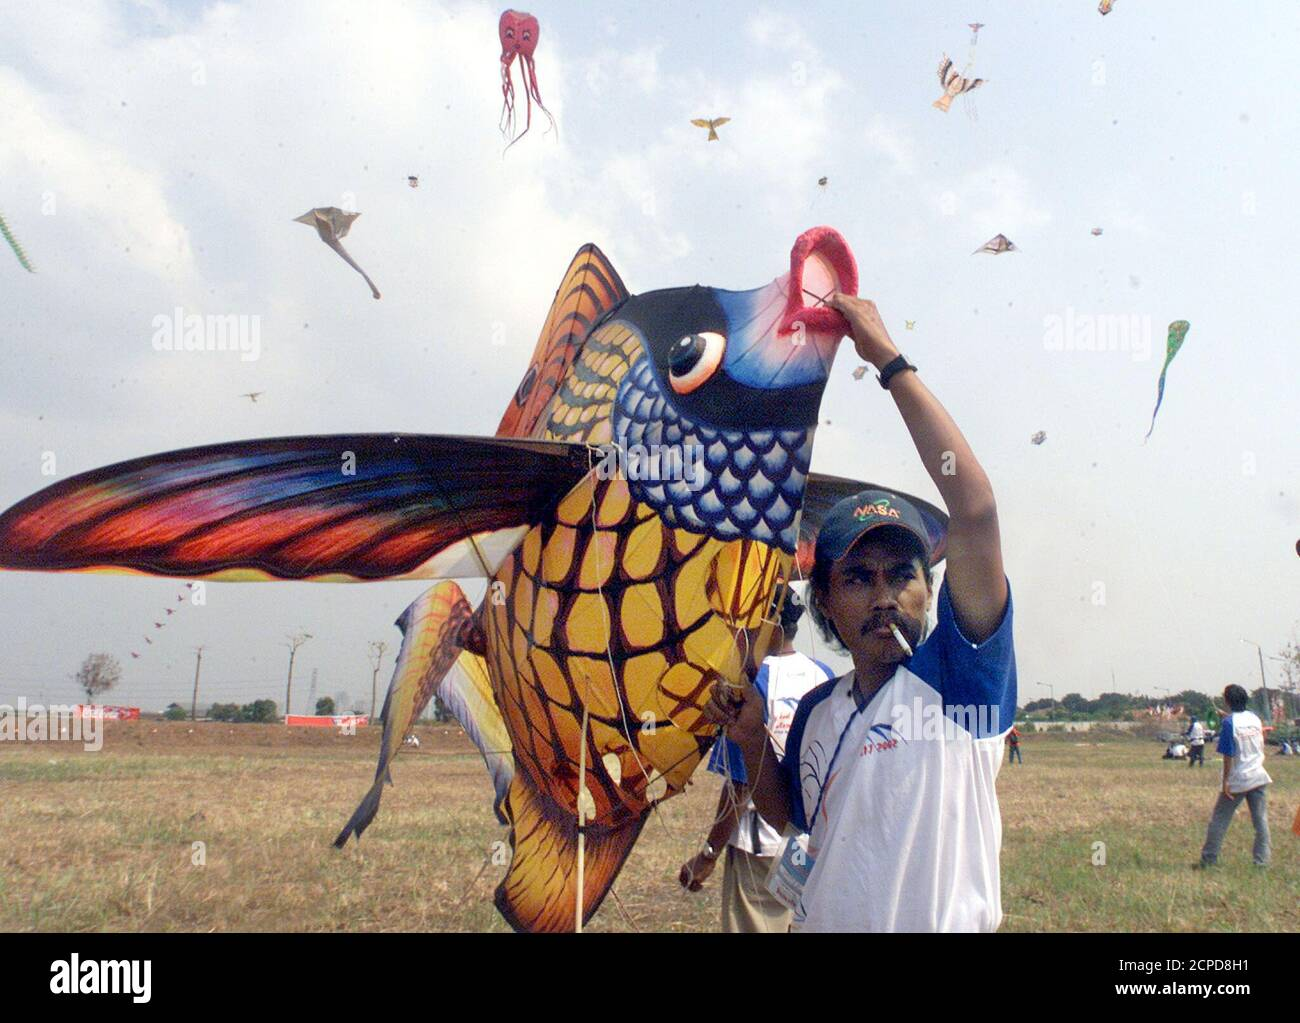 An Indonesian participant prepares to fly a kite shaped like a fish in Jakarta June 30, 2002. The men are among dozens of international participants at Jakarta's international kite festival. Eleven countries and dozens of provinces in Indonesia will take part in the three-day festival. REUTERS/Supri  AS/DL Stock Photo